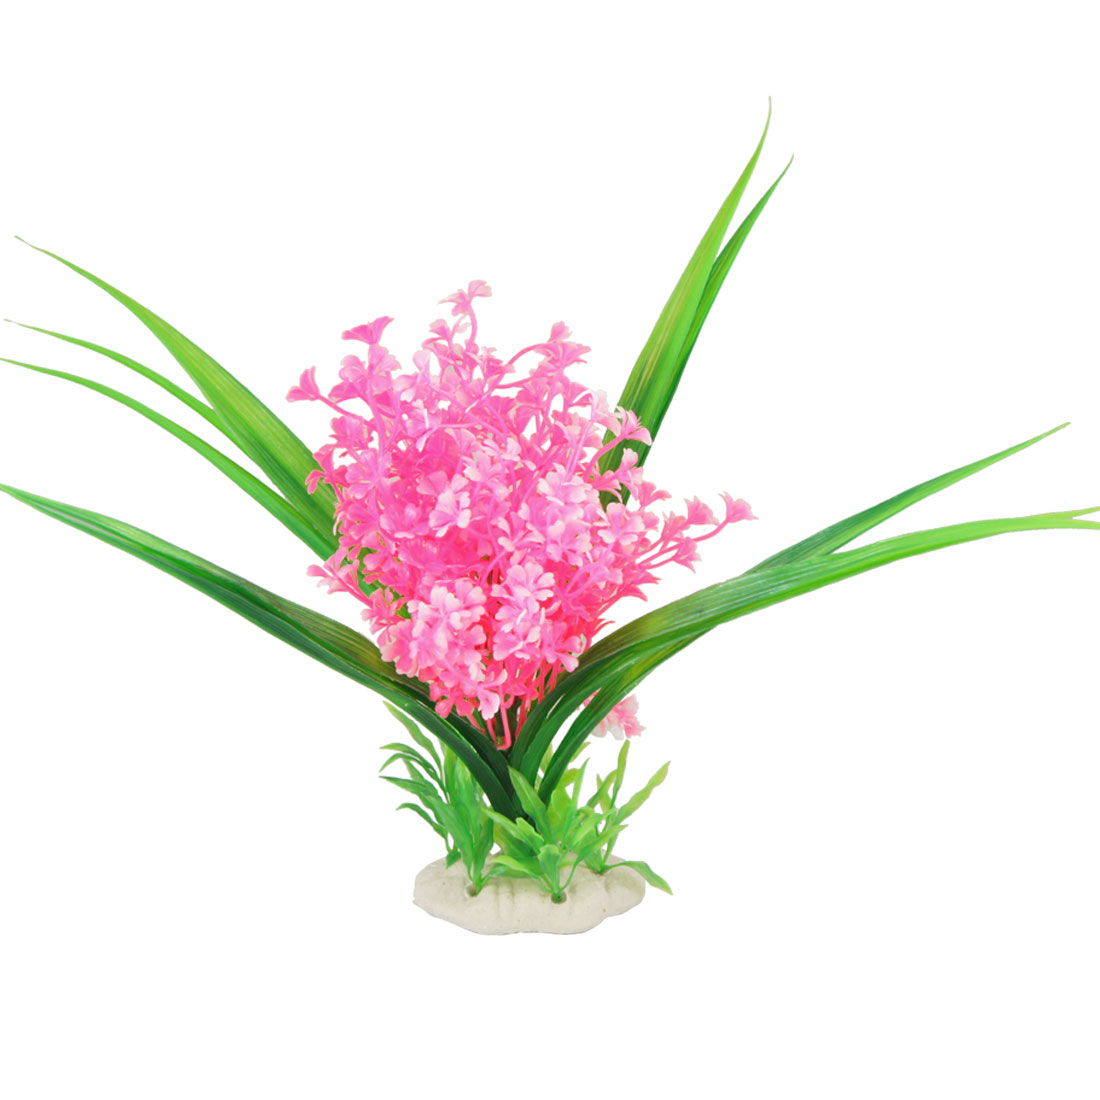 Ceramic Base Green Long Leaves Pink Flowers Grass for Aquarium Decor